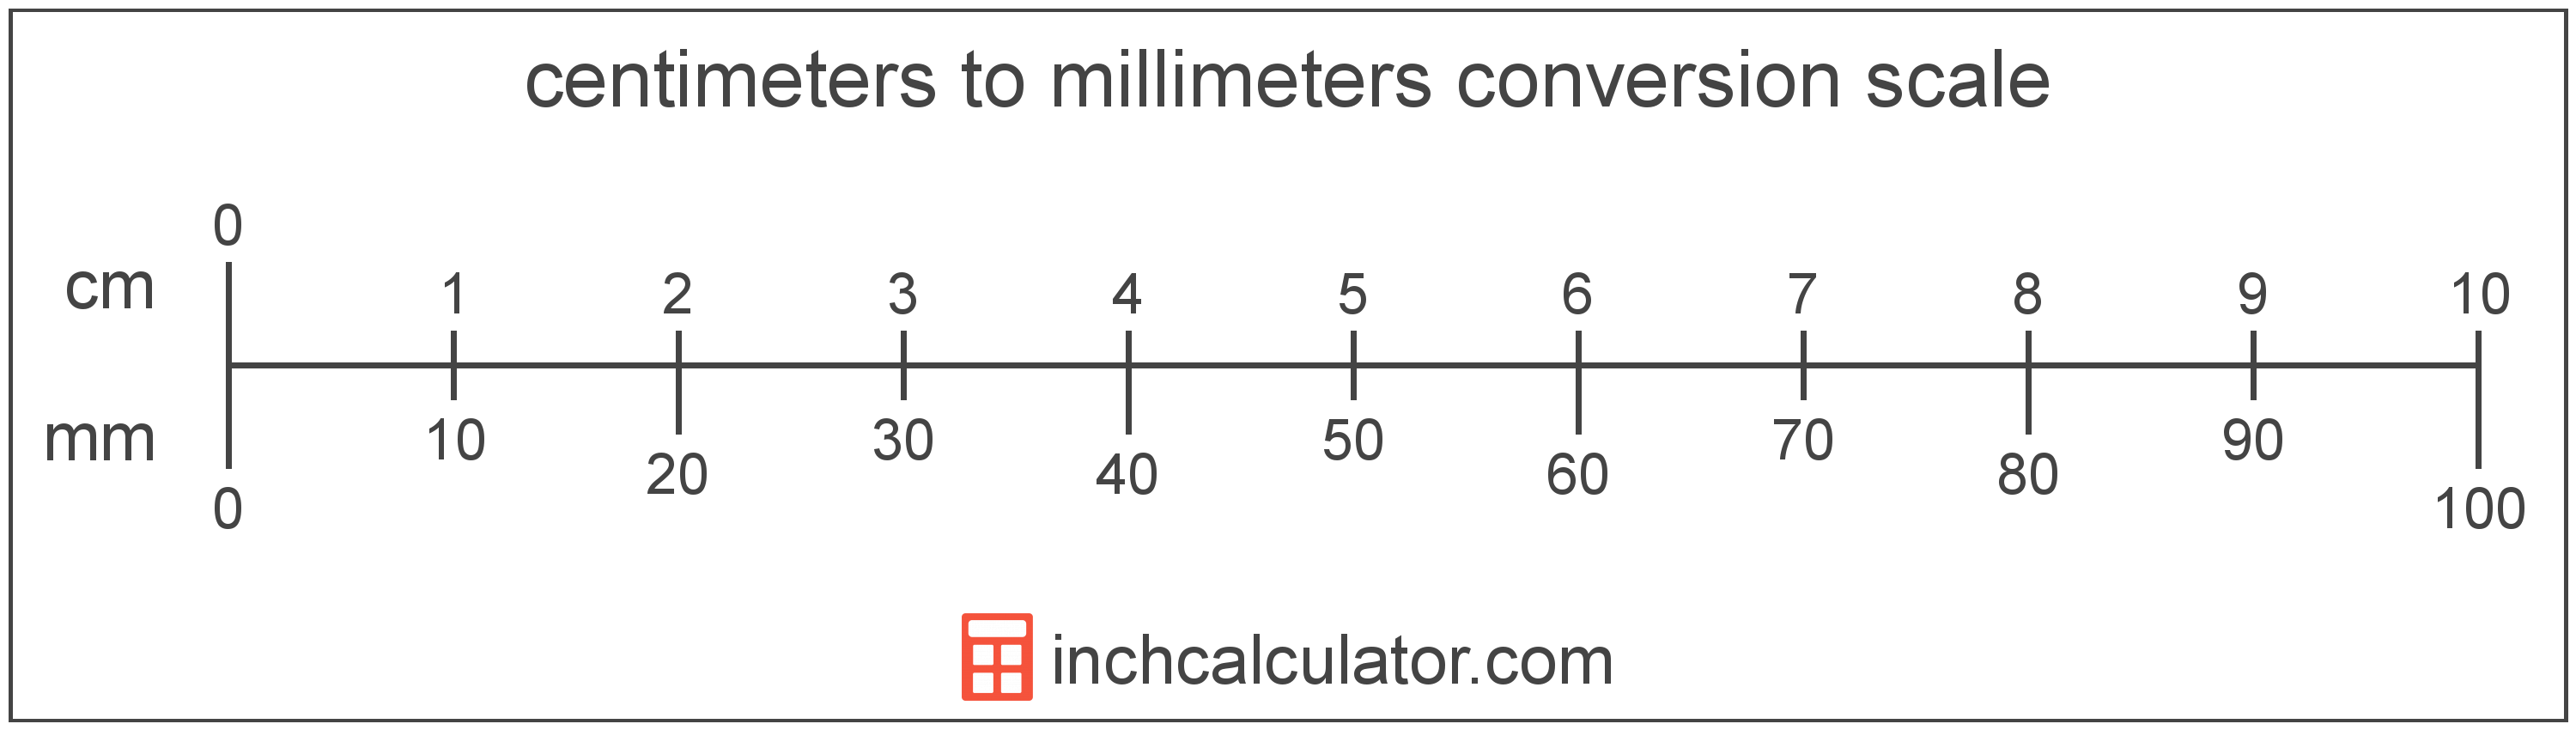 Centimeters To Millimeters Conversion Cm To Mm